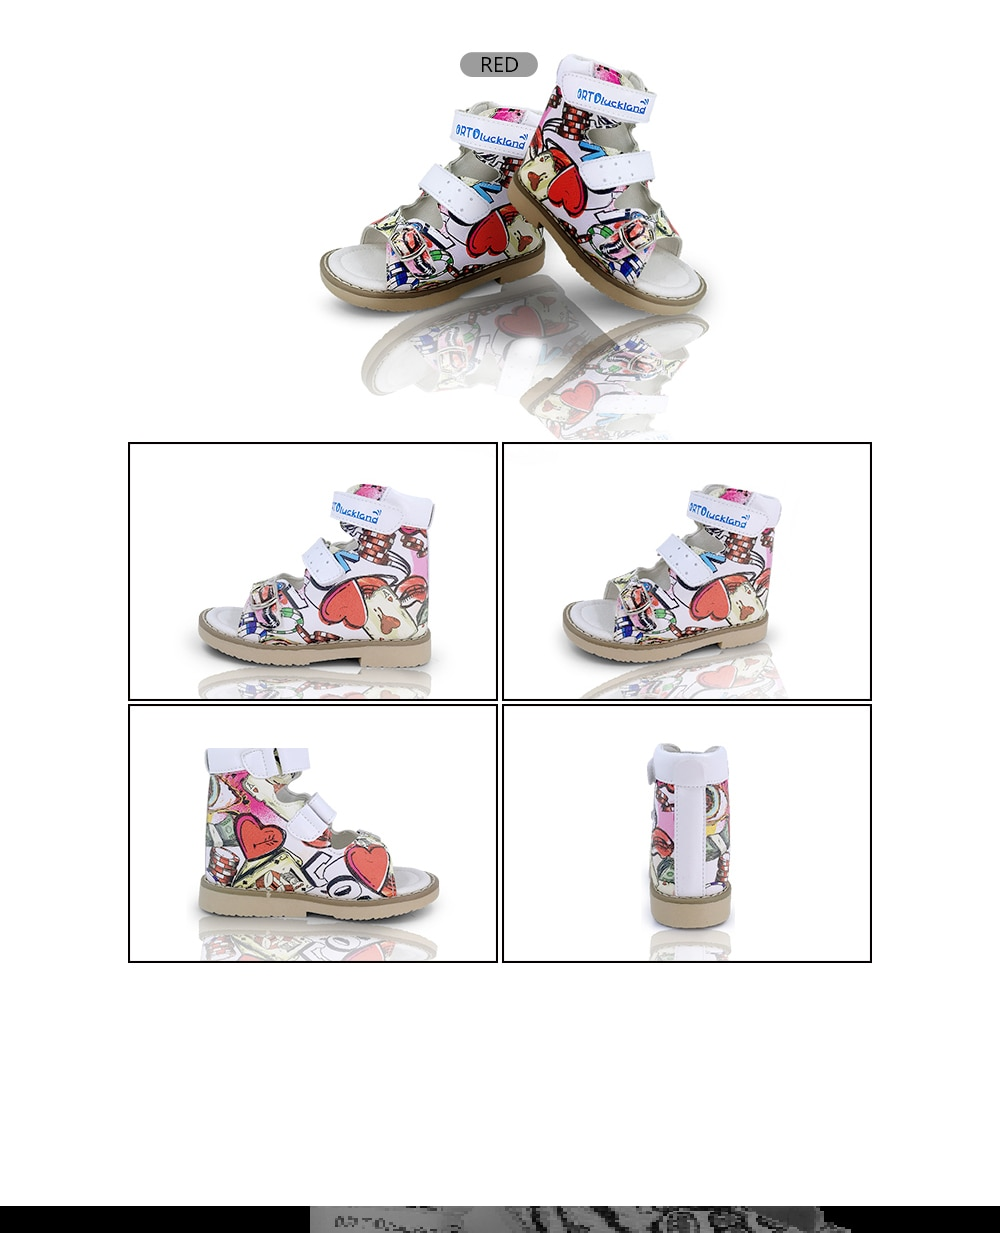 Ortoluckland Baby Leather Shoes Orthopedic For Children Sandals Boys Pattern Graffiti Girl Dance Shoes Platform for kids 10 year